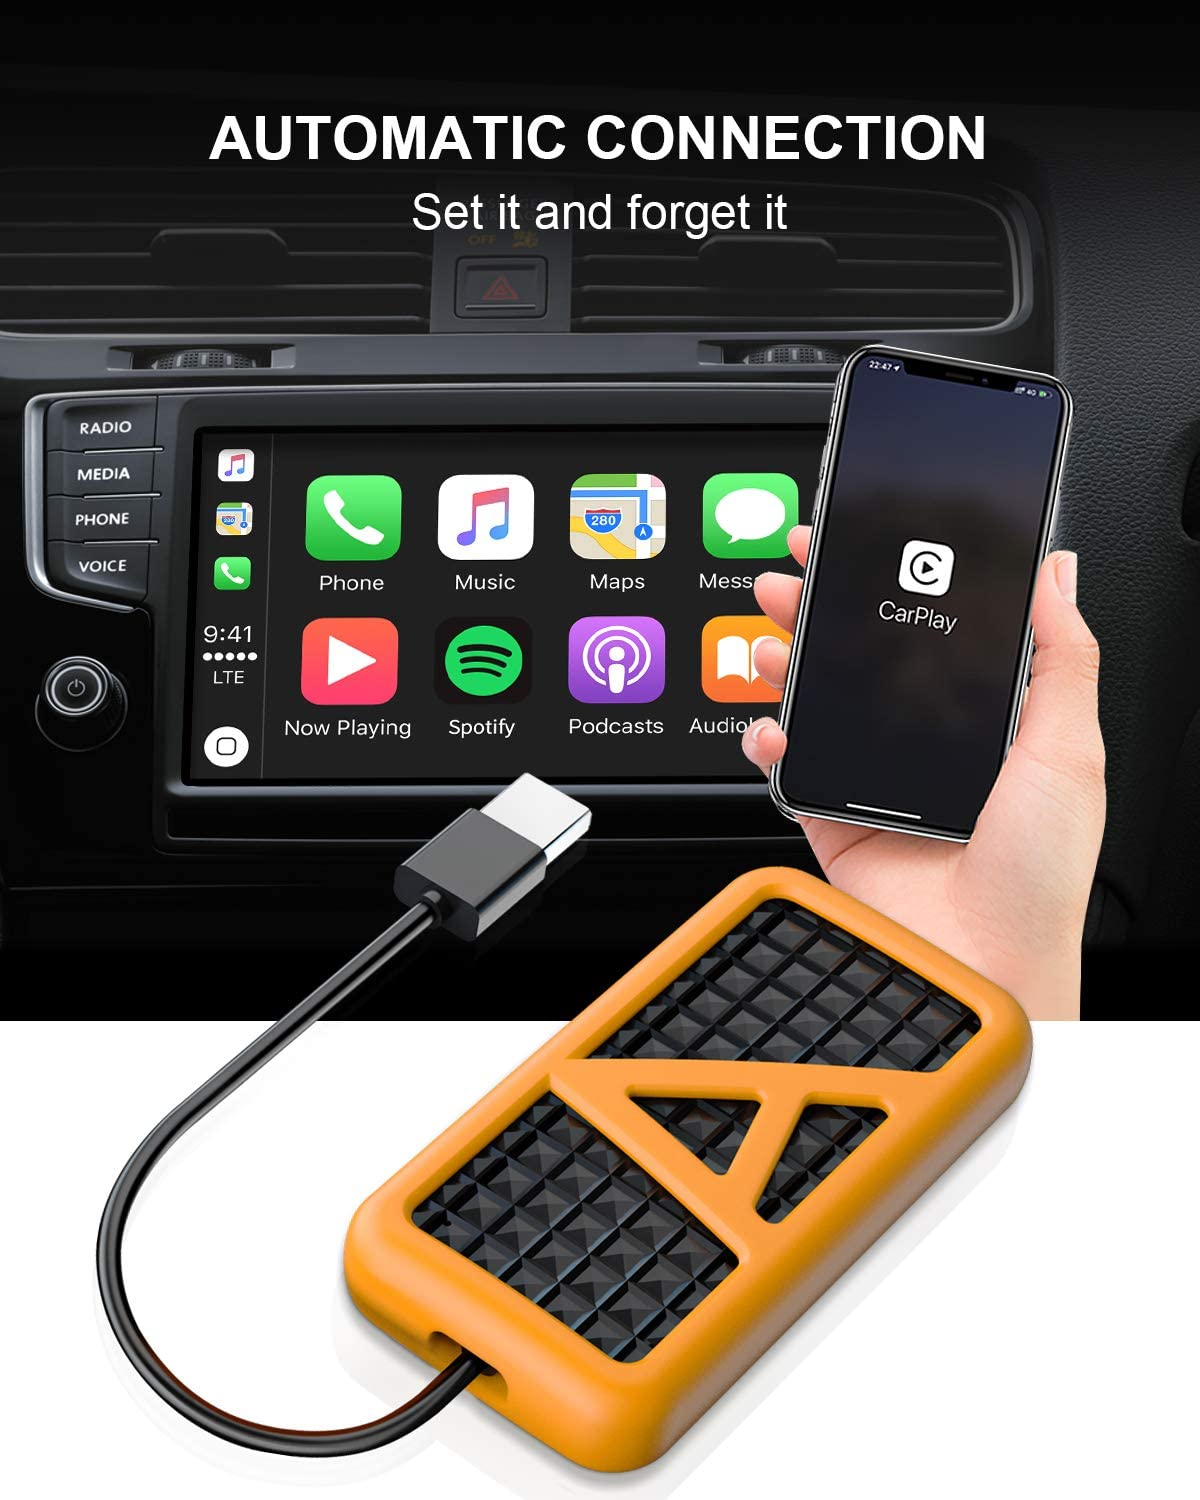 Convert Wired CarPlay to Wireless Compatible with A3 A4 A5 A6 A7 Q2 Q5 Q7 R8 TT MMI 2017-2019 Wireless CarPlay Adapter CarPlay USB Dongle for Factory CarPlay Smartphone Link Receiver for iPhone